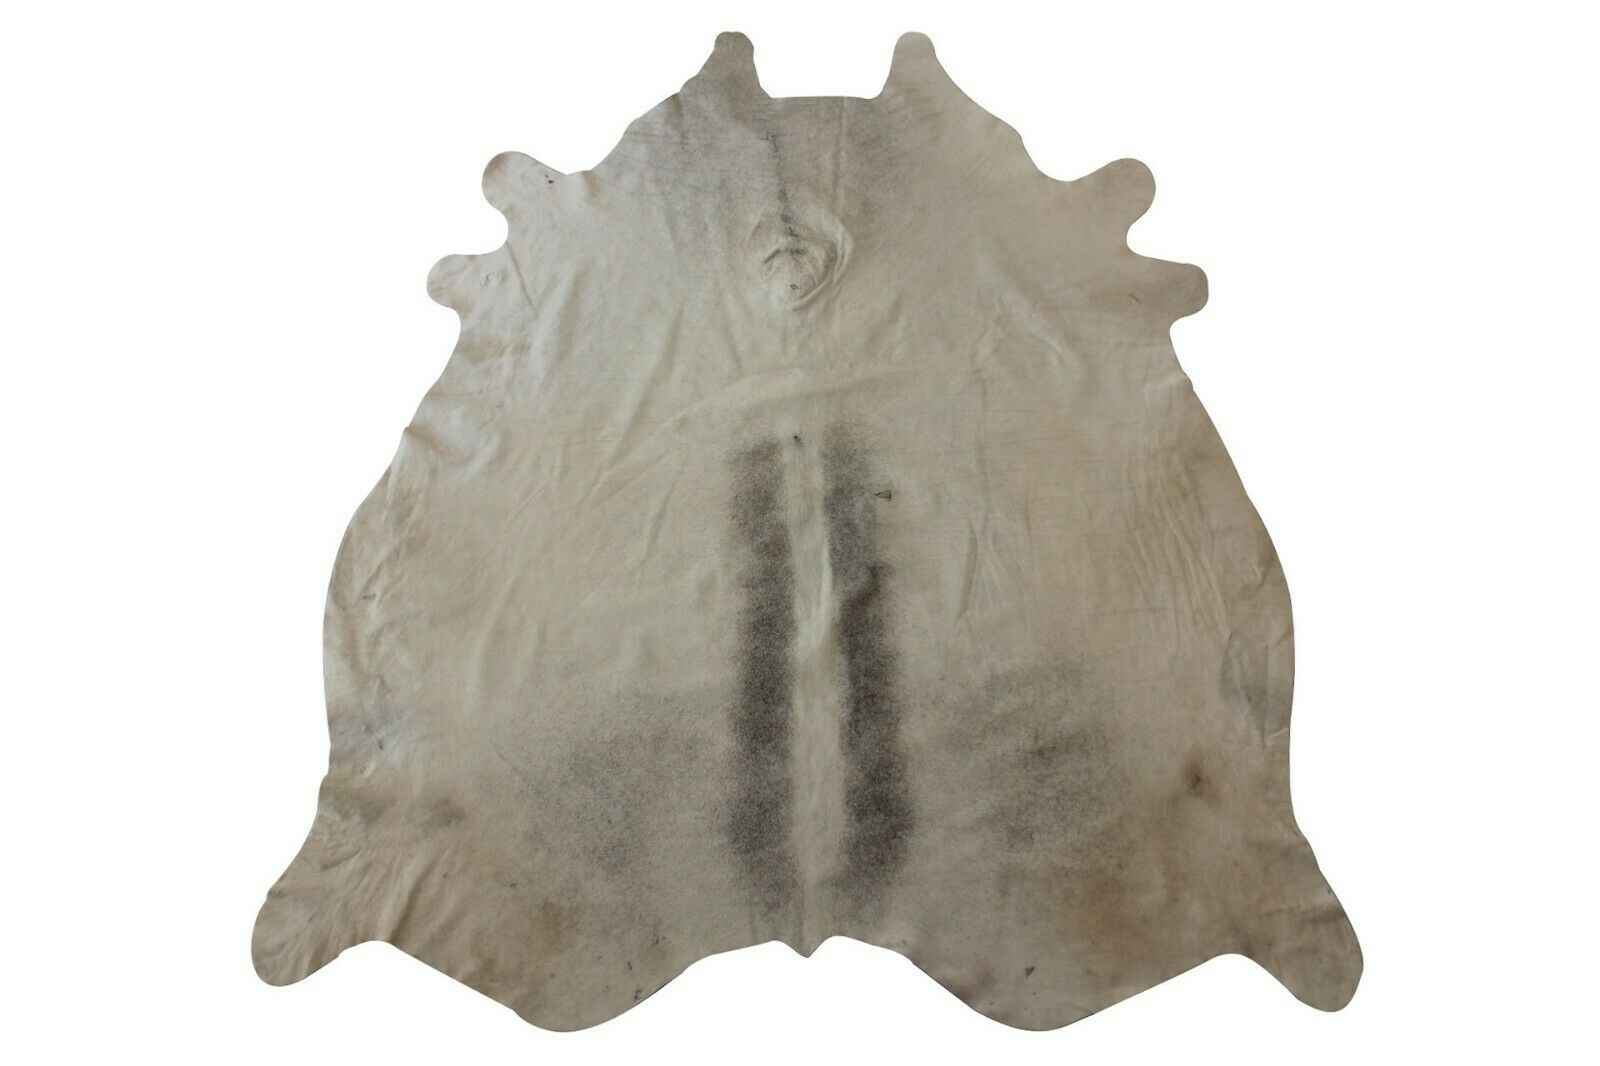 Highlights Material 100 Real Original Cowhide Delivered In 1 To 4 Business Days Size 5x7 Ft Or 32 To 37 Sq Ft Vari Grey Cowhide Rug Cow Hide Rug Cowhide